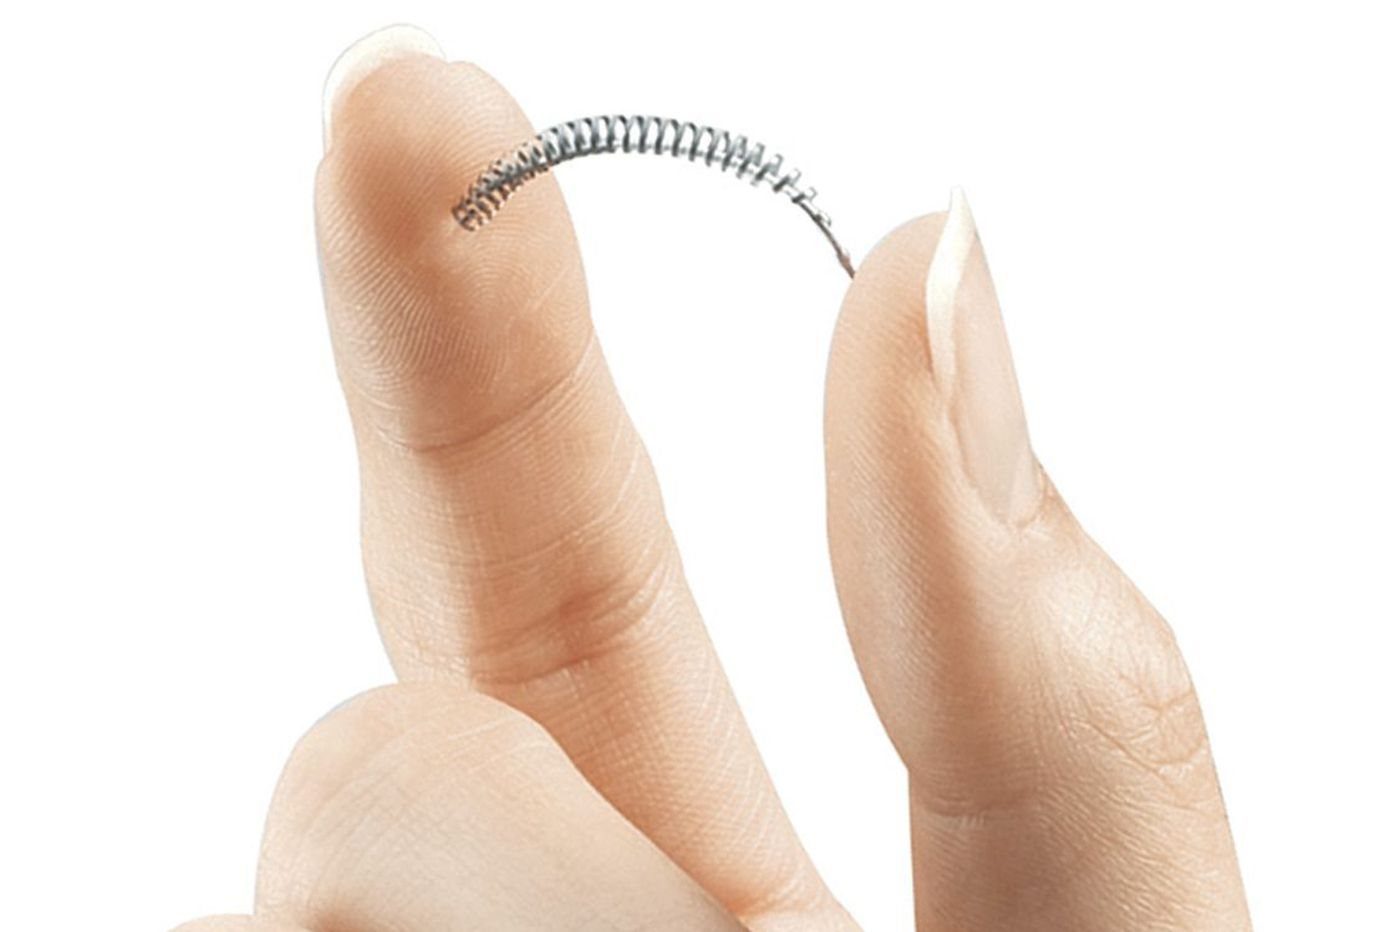 Bayer to end sales of Essure, birth control device blamed for serious injuries